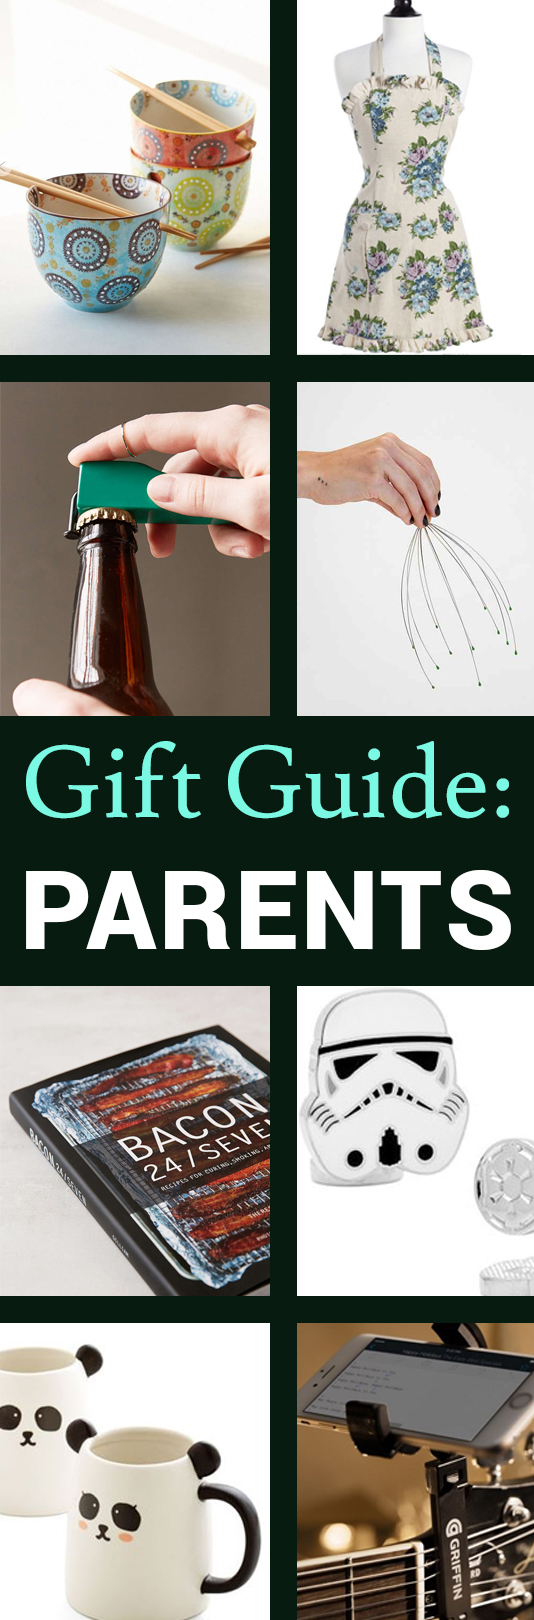 Gift Guide: Gifts for Parents